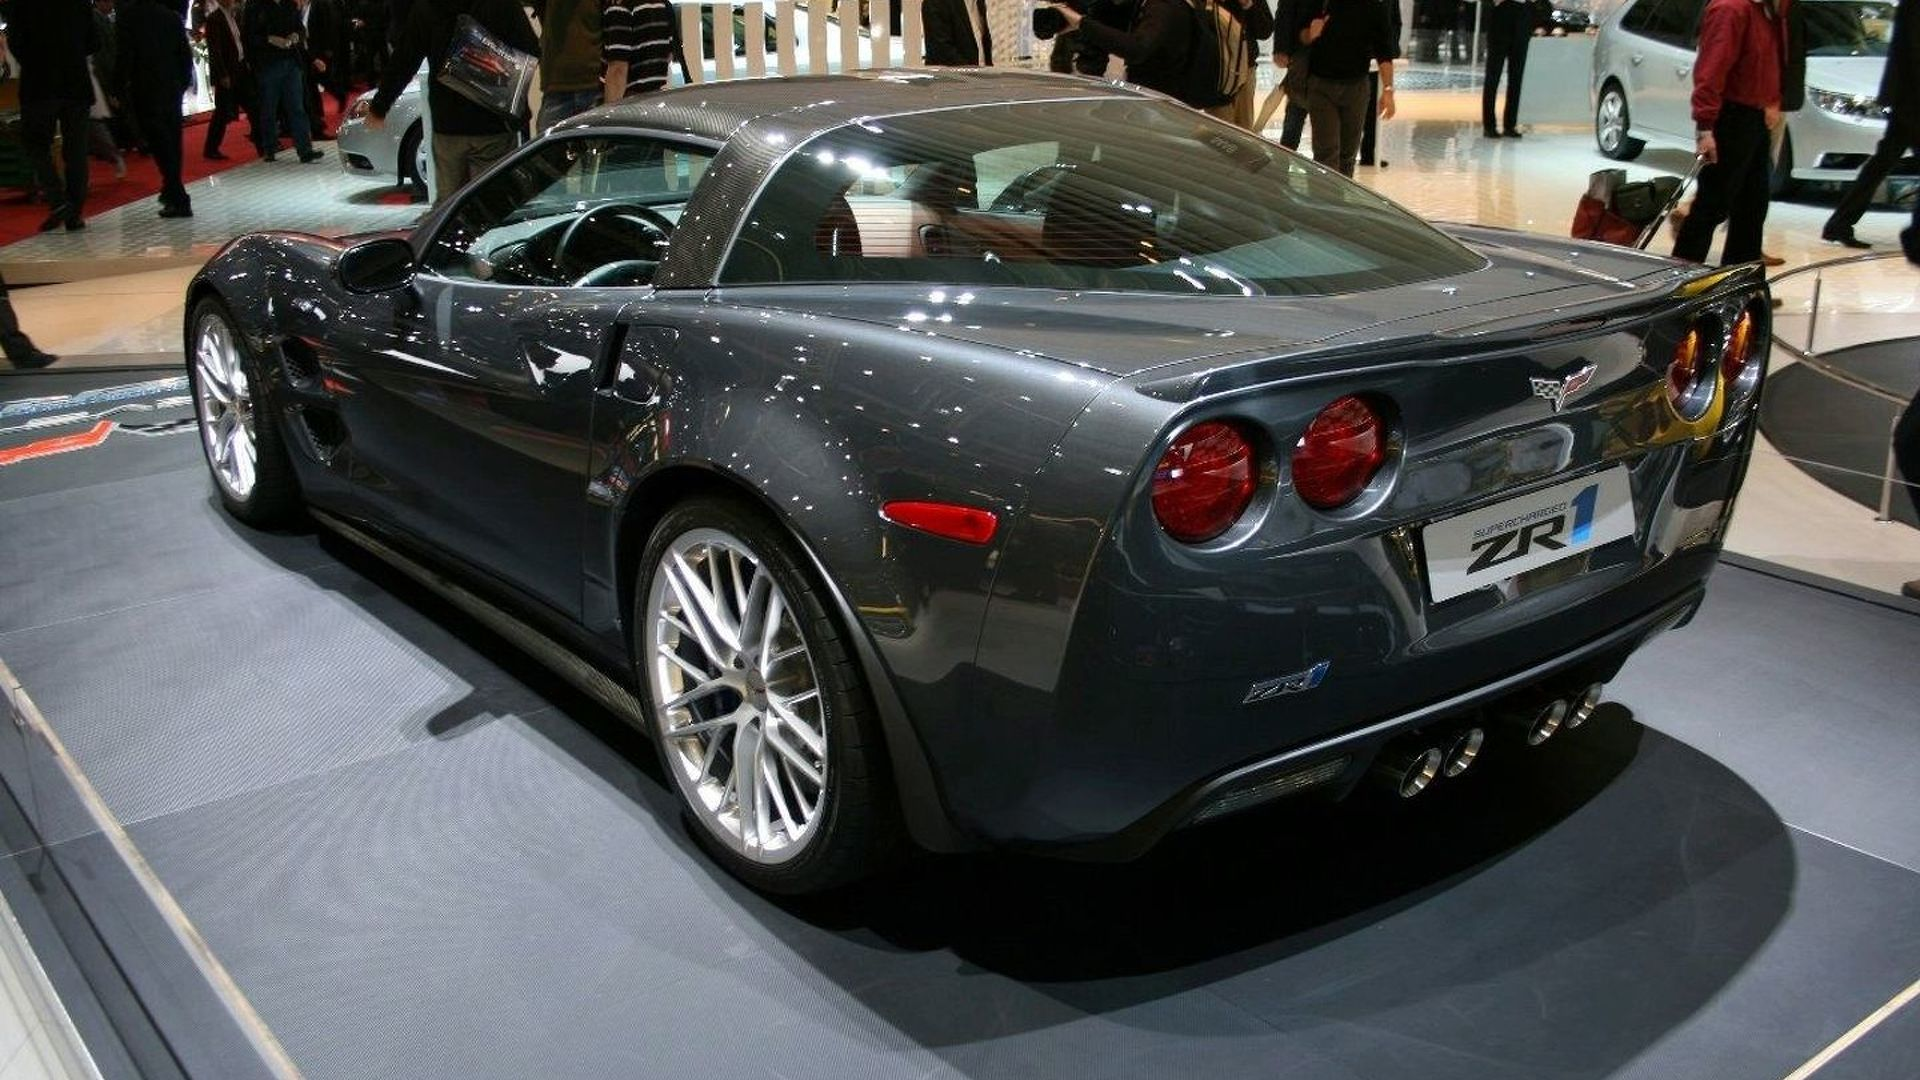 2009 Corvette ZR1 Lands in Europe